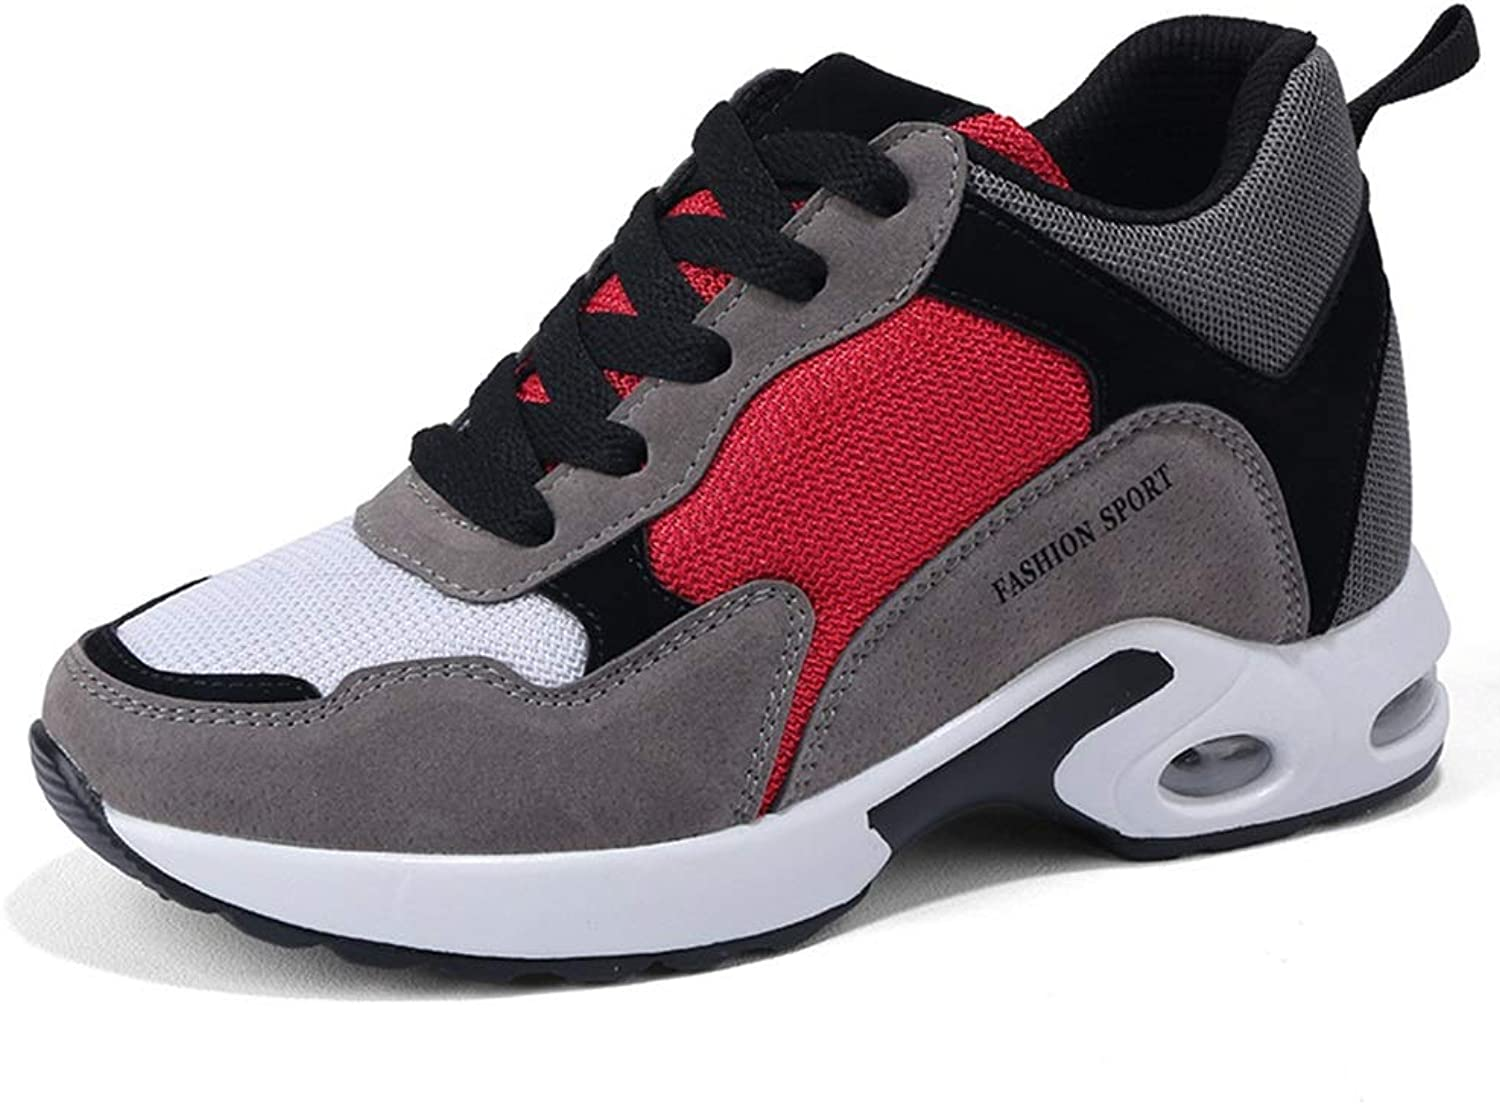 He-yanjing Women's Sneakers, Autumn and Winter Increased Women's shoes Thick-sol